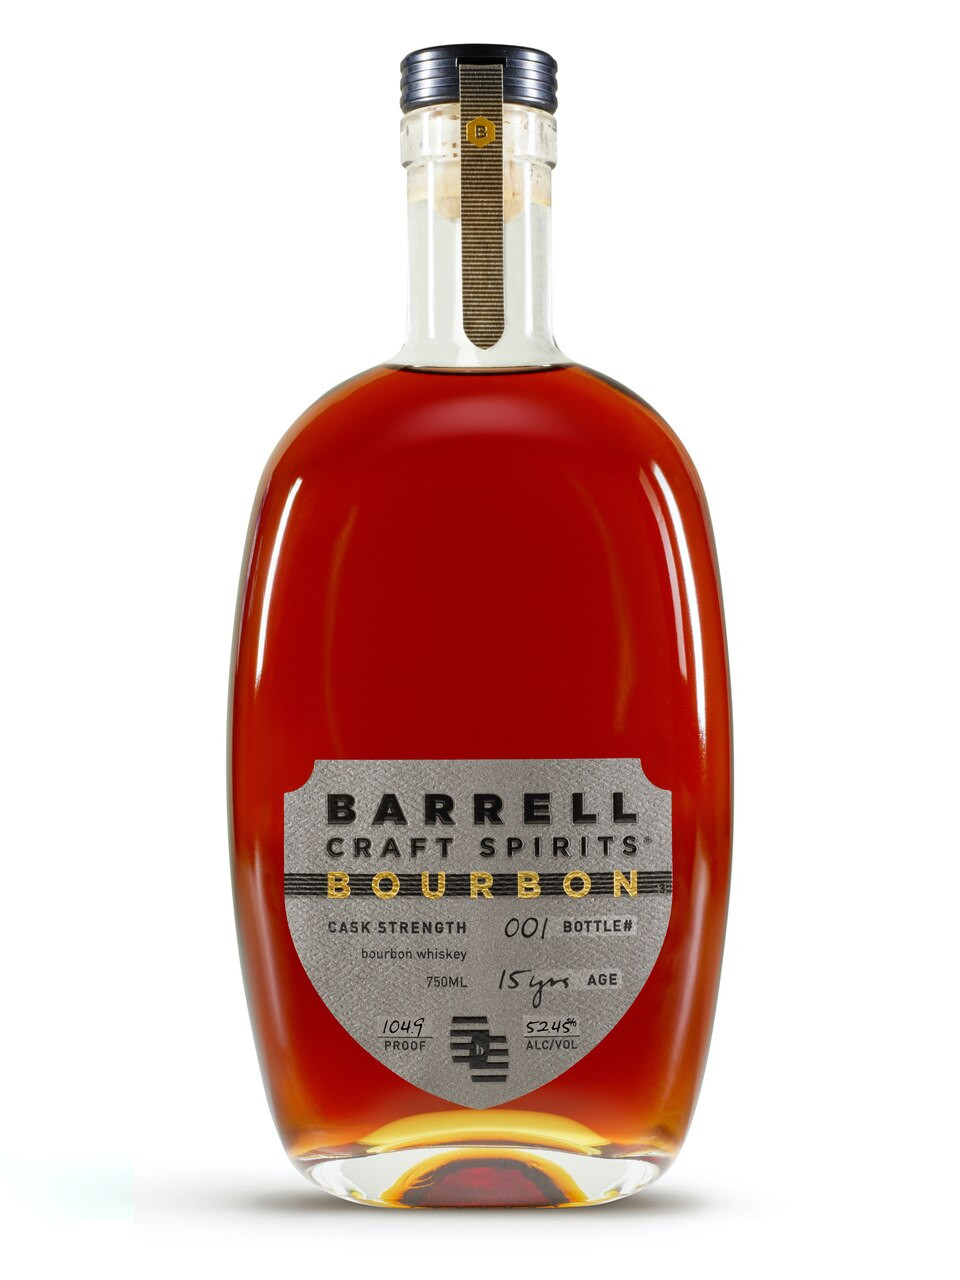 Barrel Craft Spirits 15Yr Cask Strength Bourbon 750ml